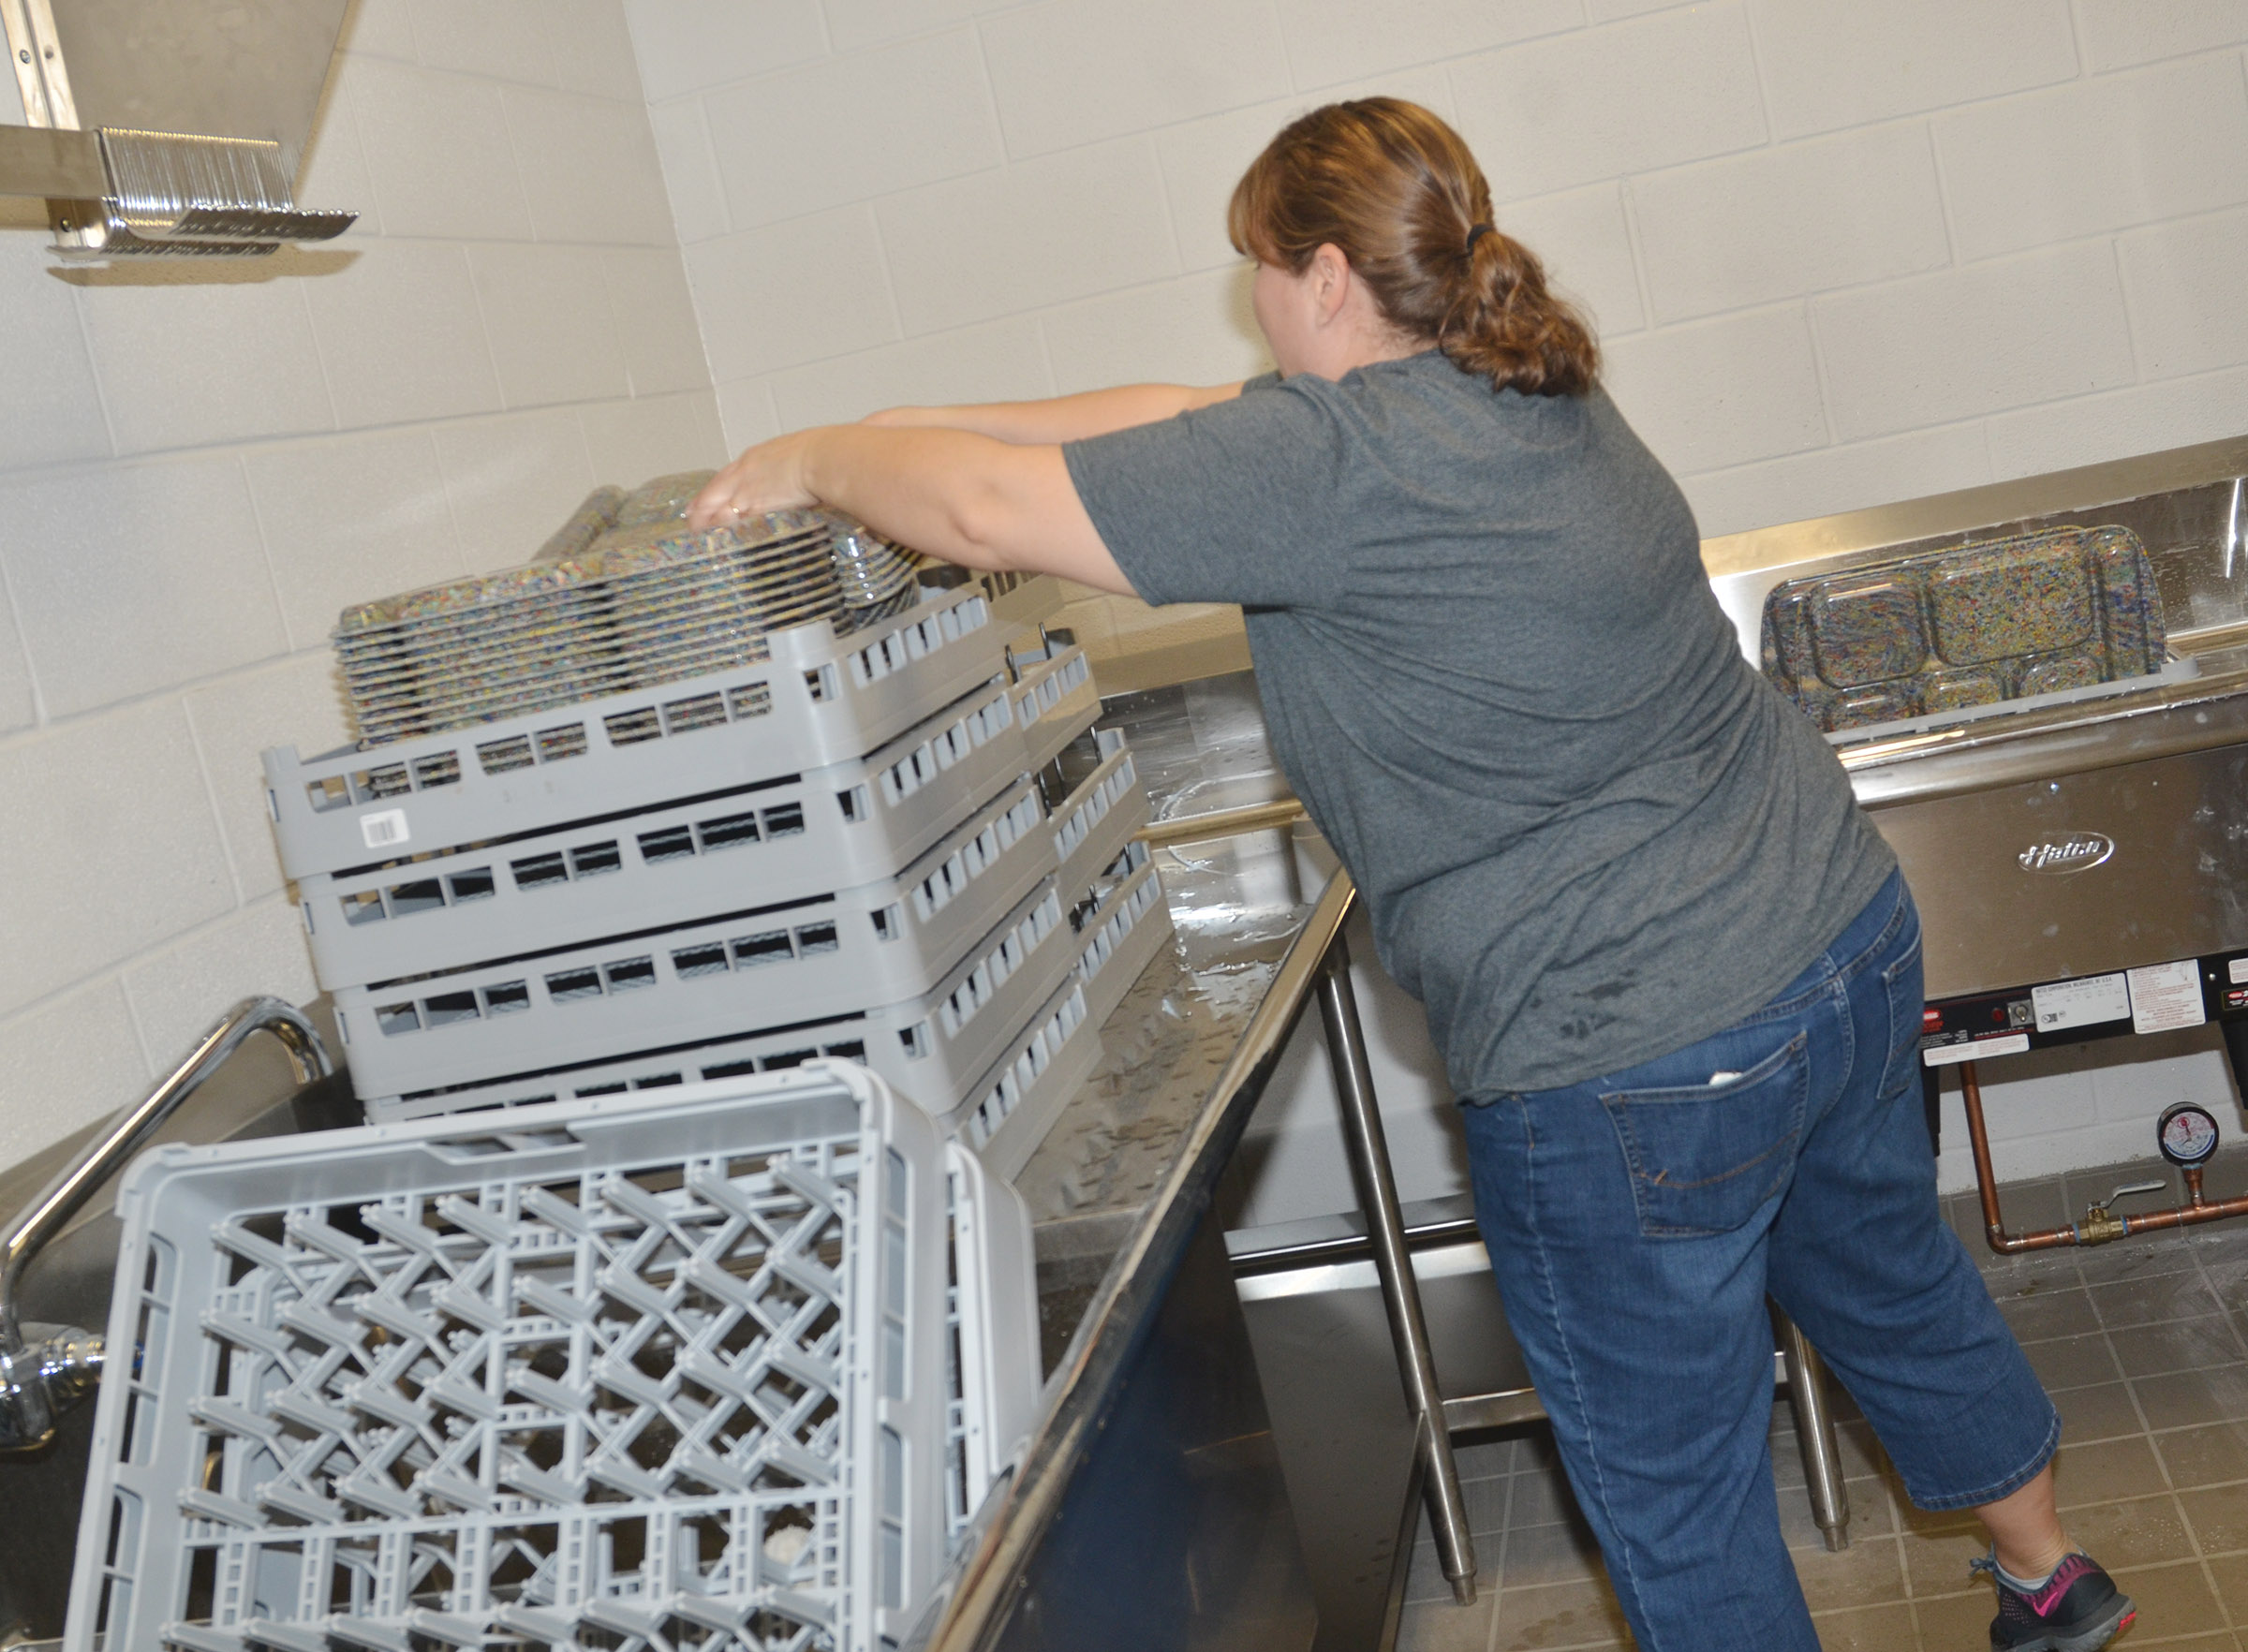 CES cafeteria worker Wanda Swafford washes new trays.